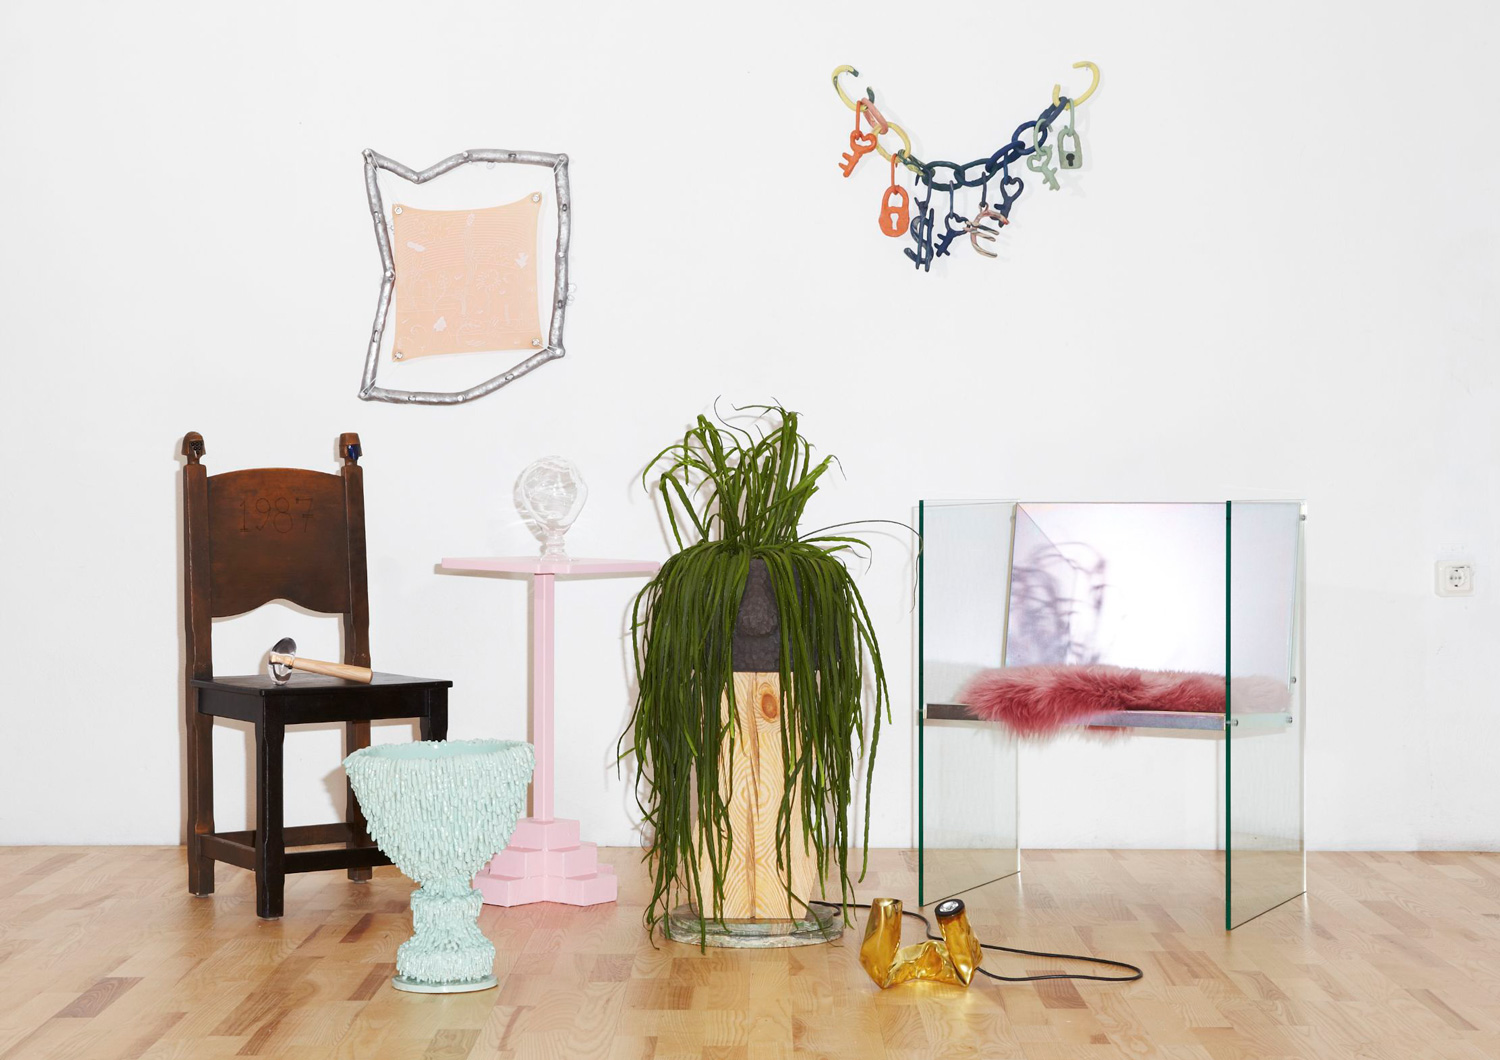 Ornsbergsauktionen 2017, An Auction of Work by Emerging Talents at Stockholm Furniture Fair 2017 | Yellowtrace